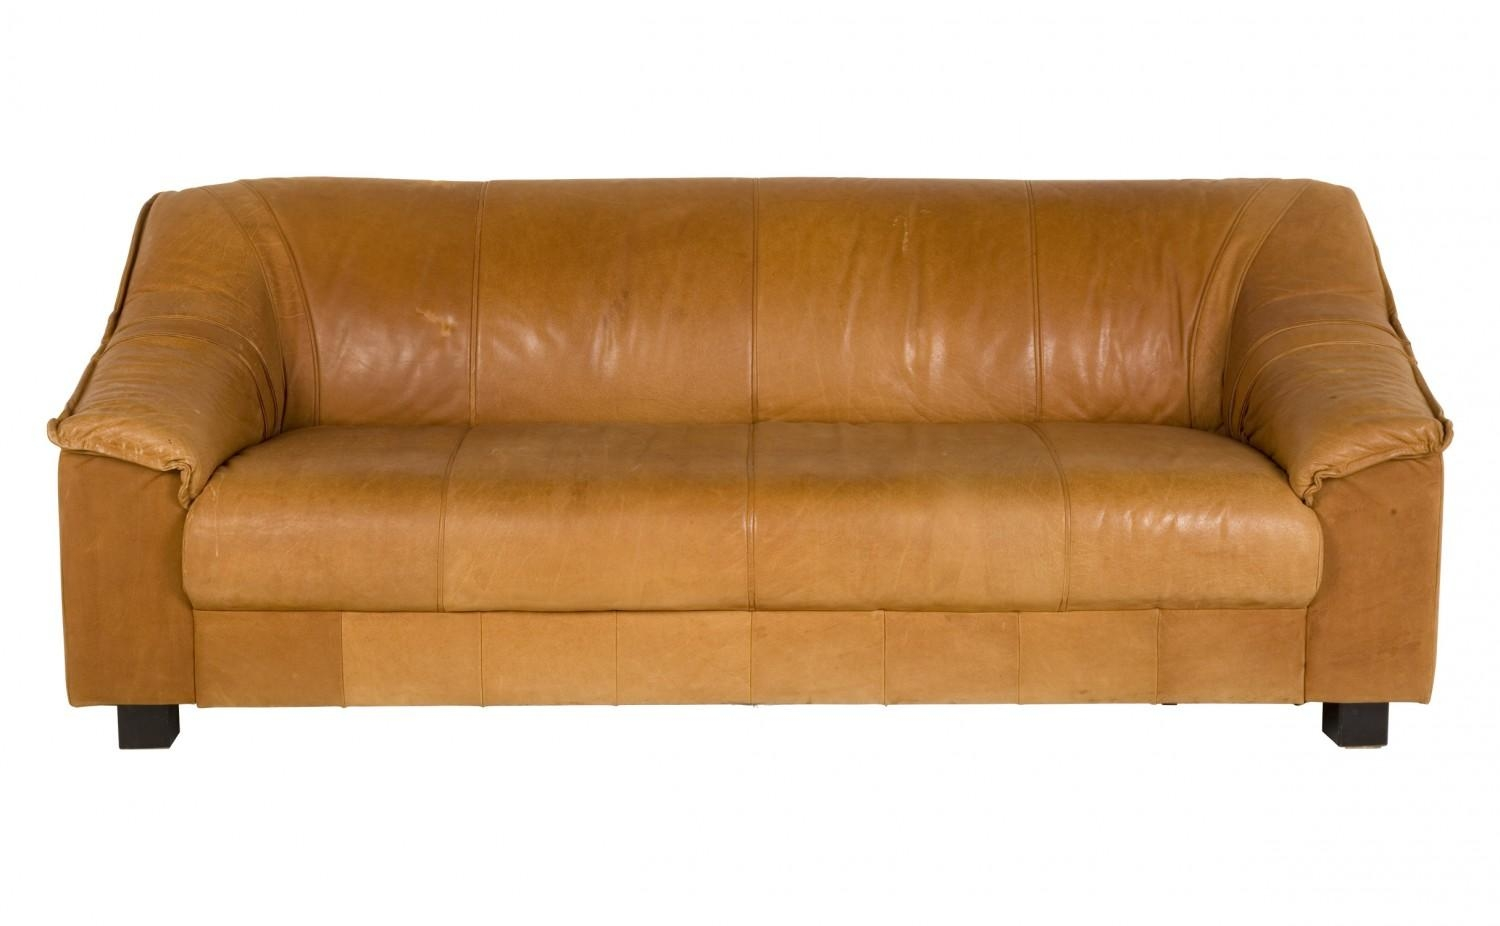 Vintage Tan Leather Sofa | Jayson Home Throughout Light Tan Leather Sofas (Image 20 of 20)